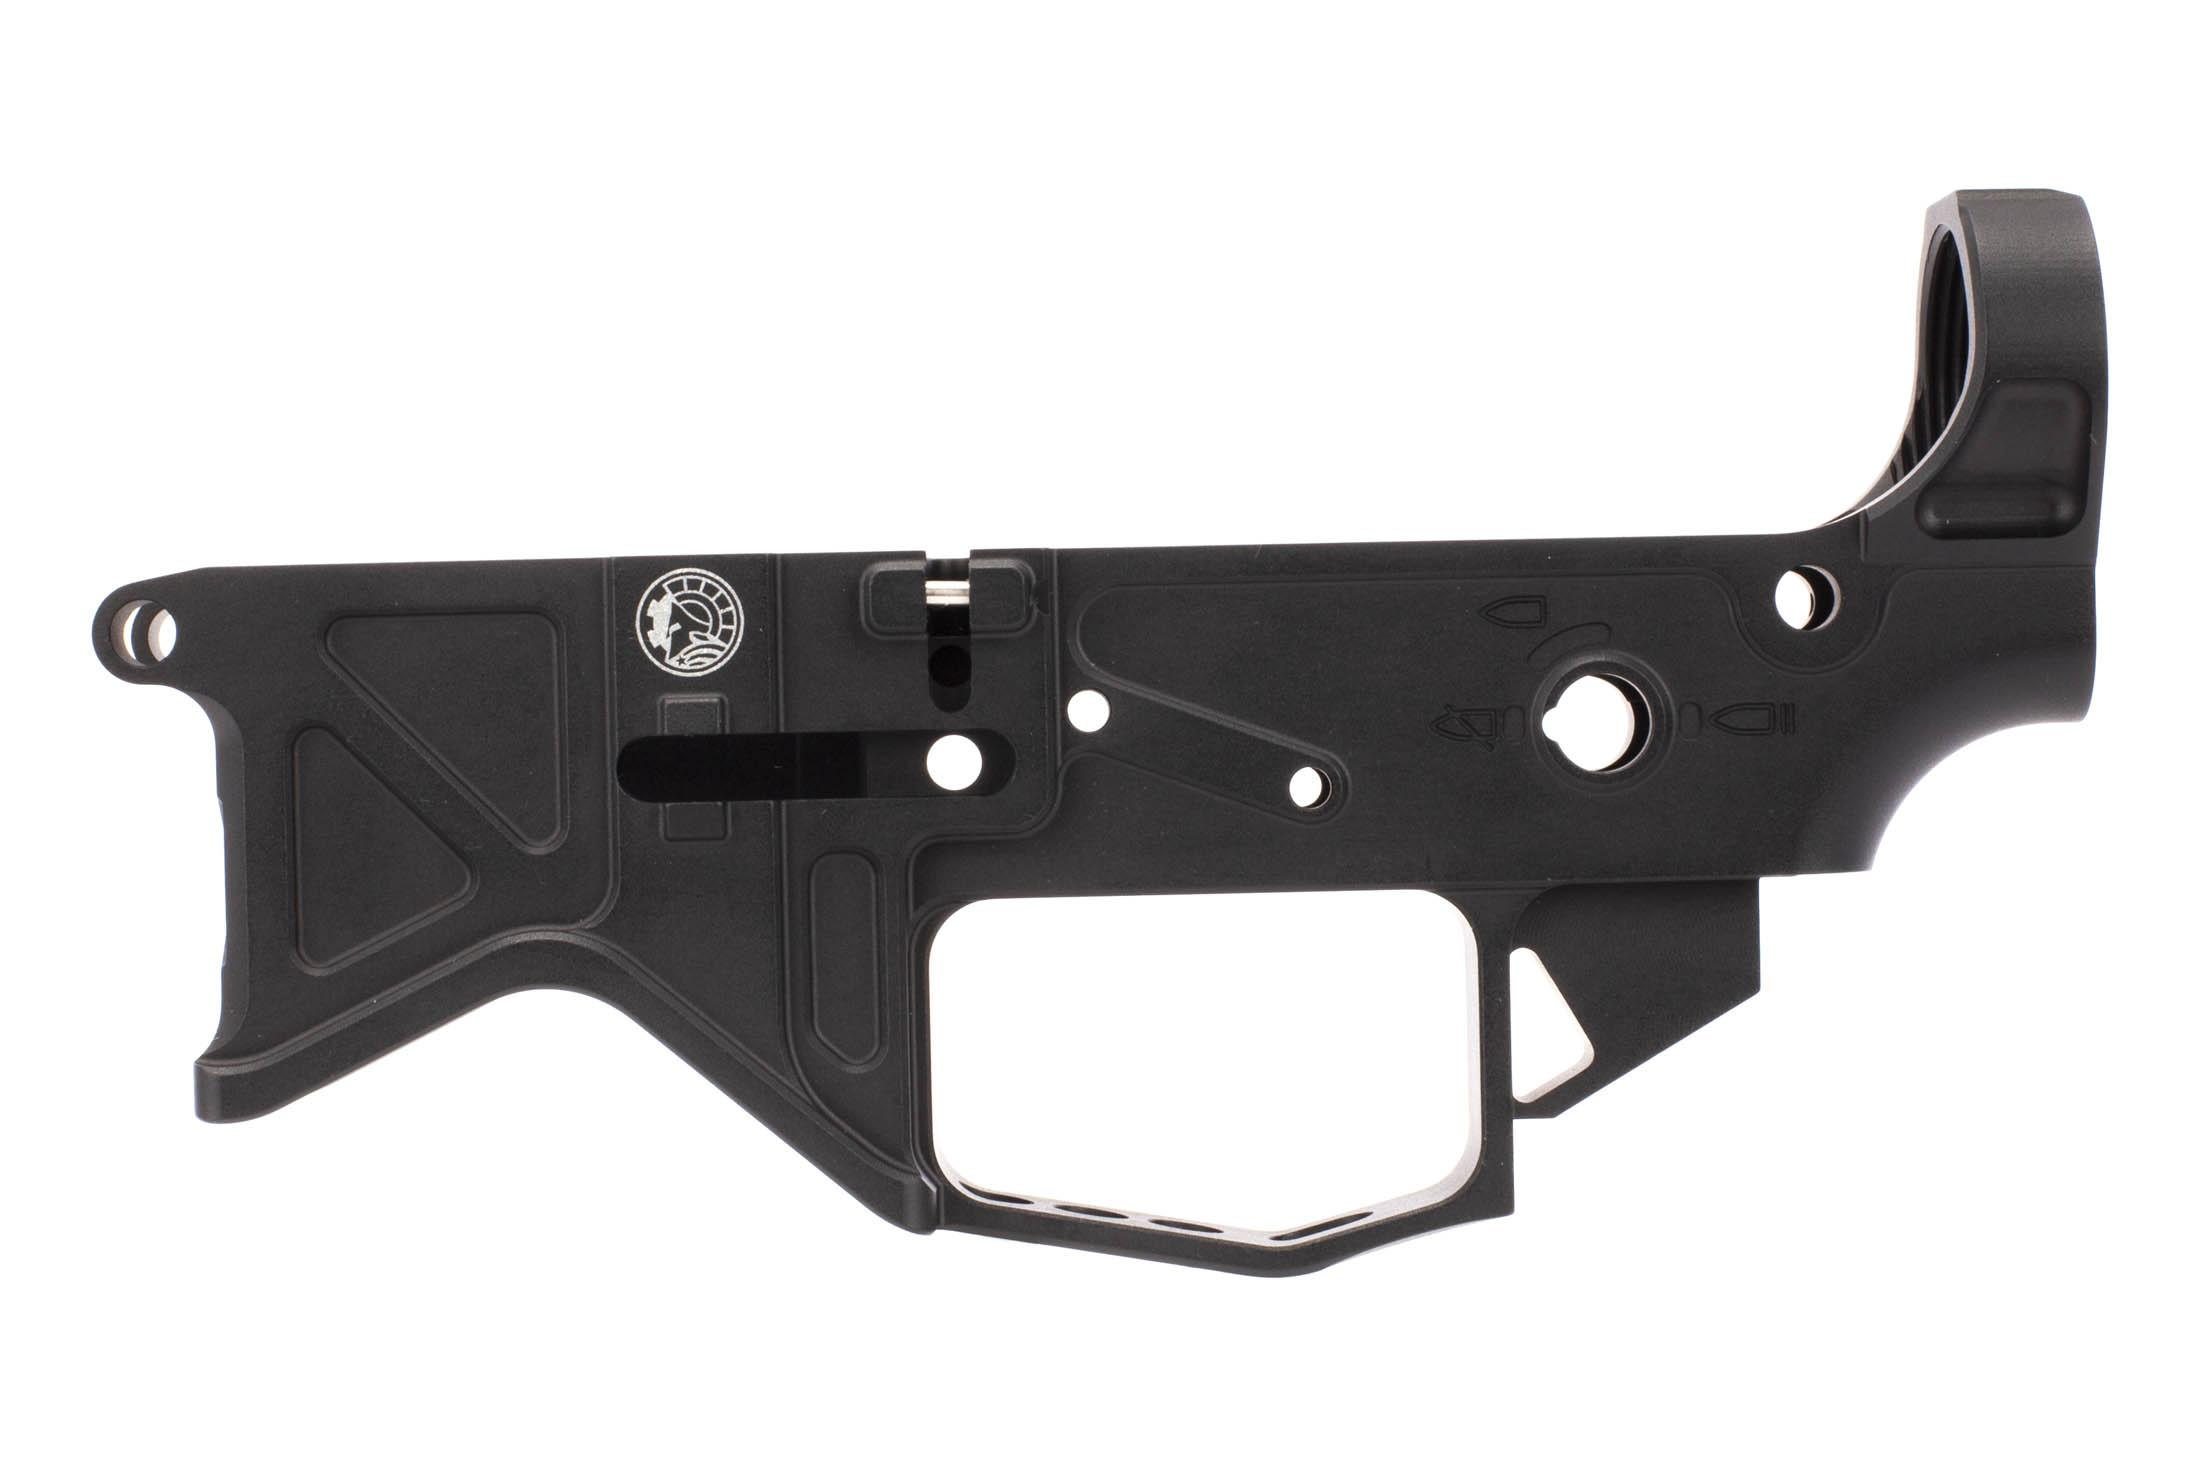 The Billet AR-15 lower receiver from Battle Arms Development features an enlarged trigger guard for gloved use